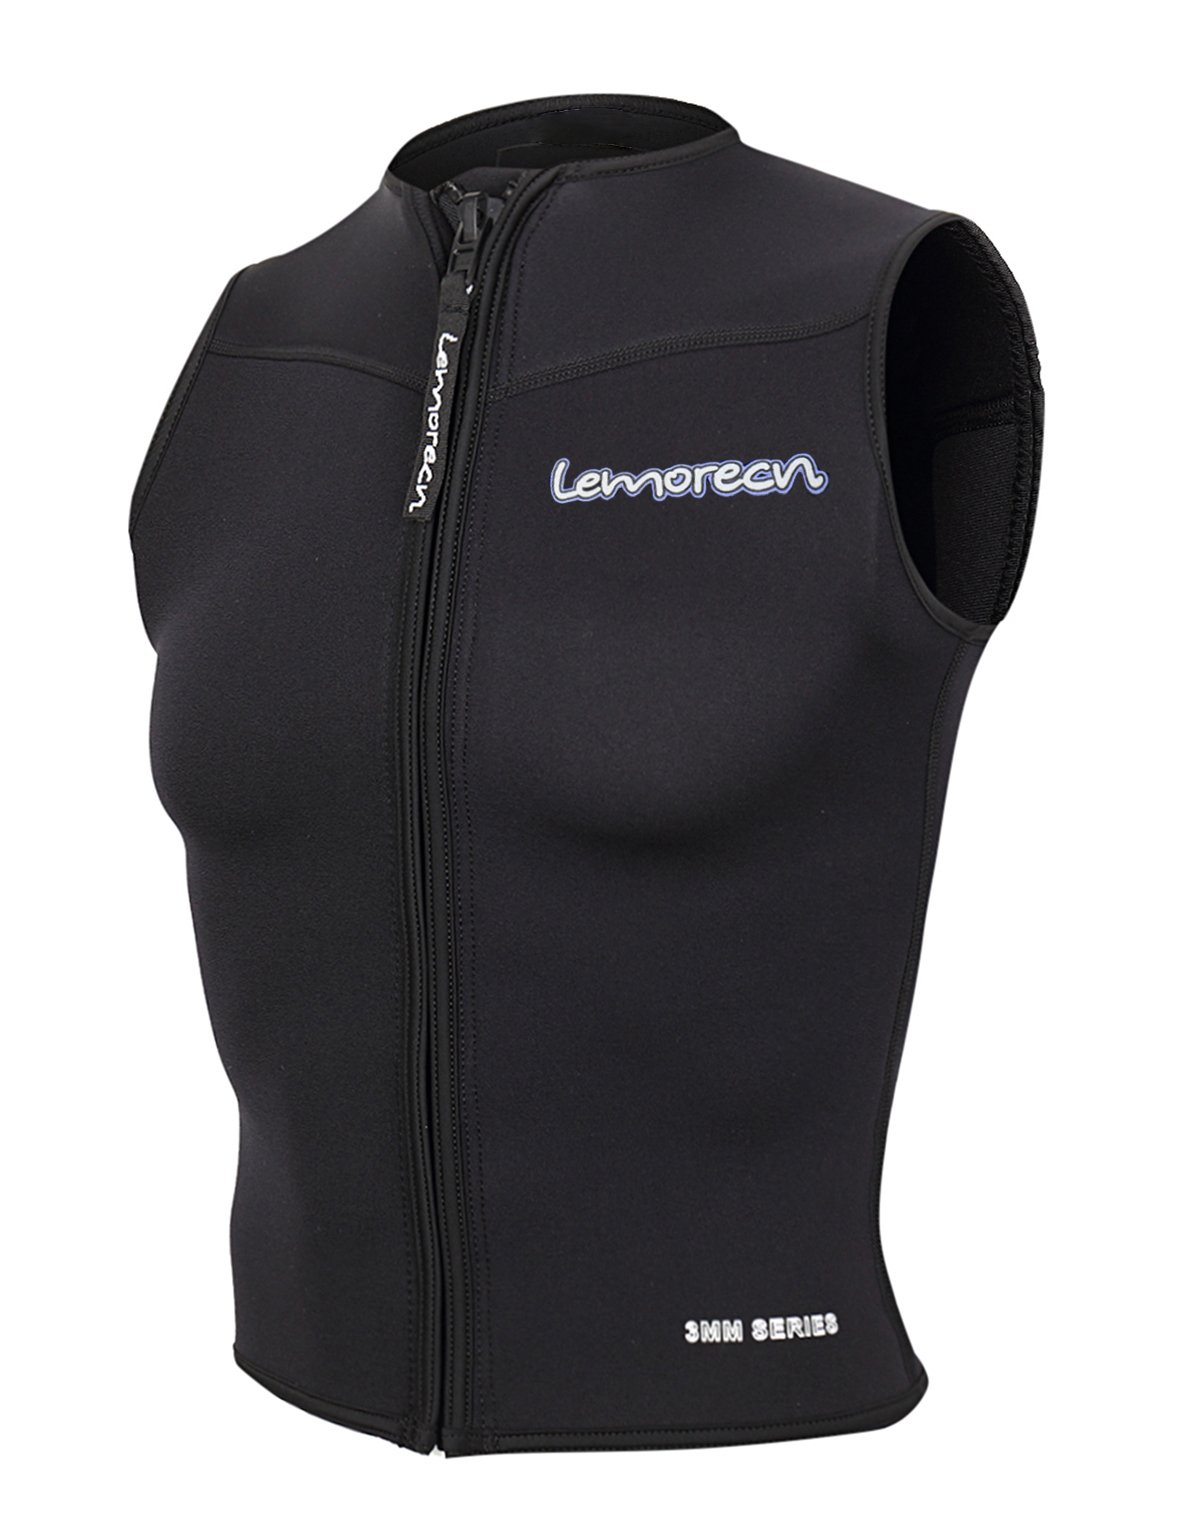 Lemorecn Women Wetsuits Top Premium Neoprene 3mm Zipper Diving Vest (2097black8) by Lemorecn